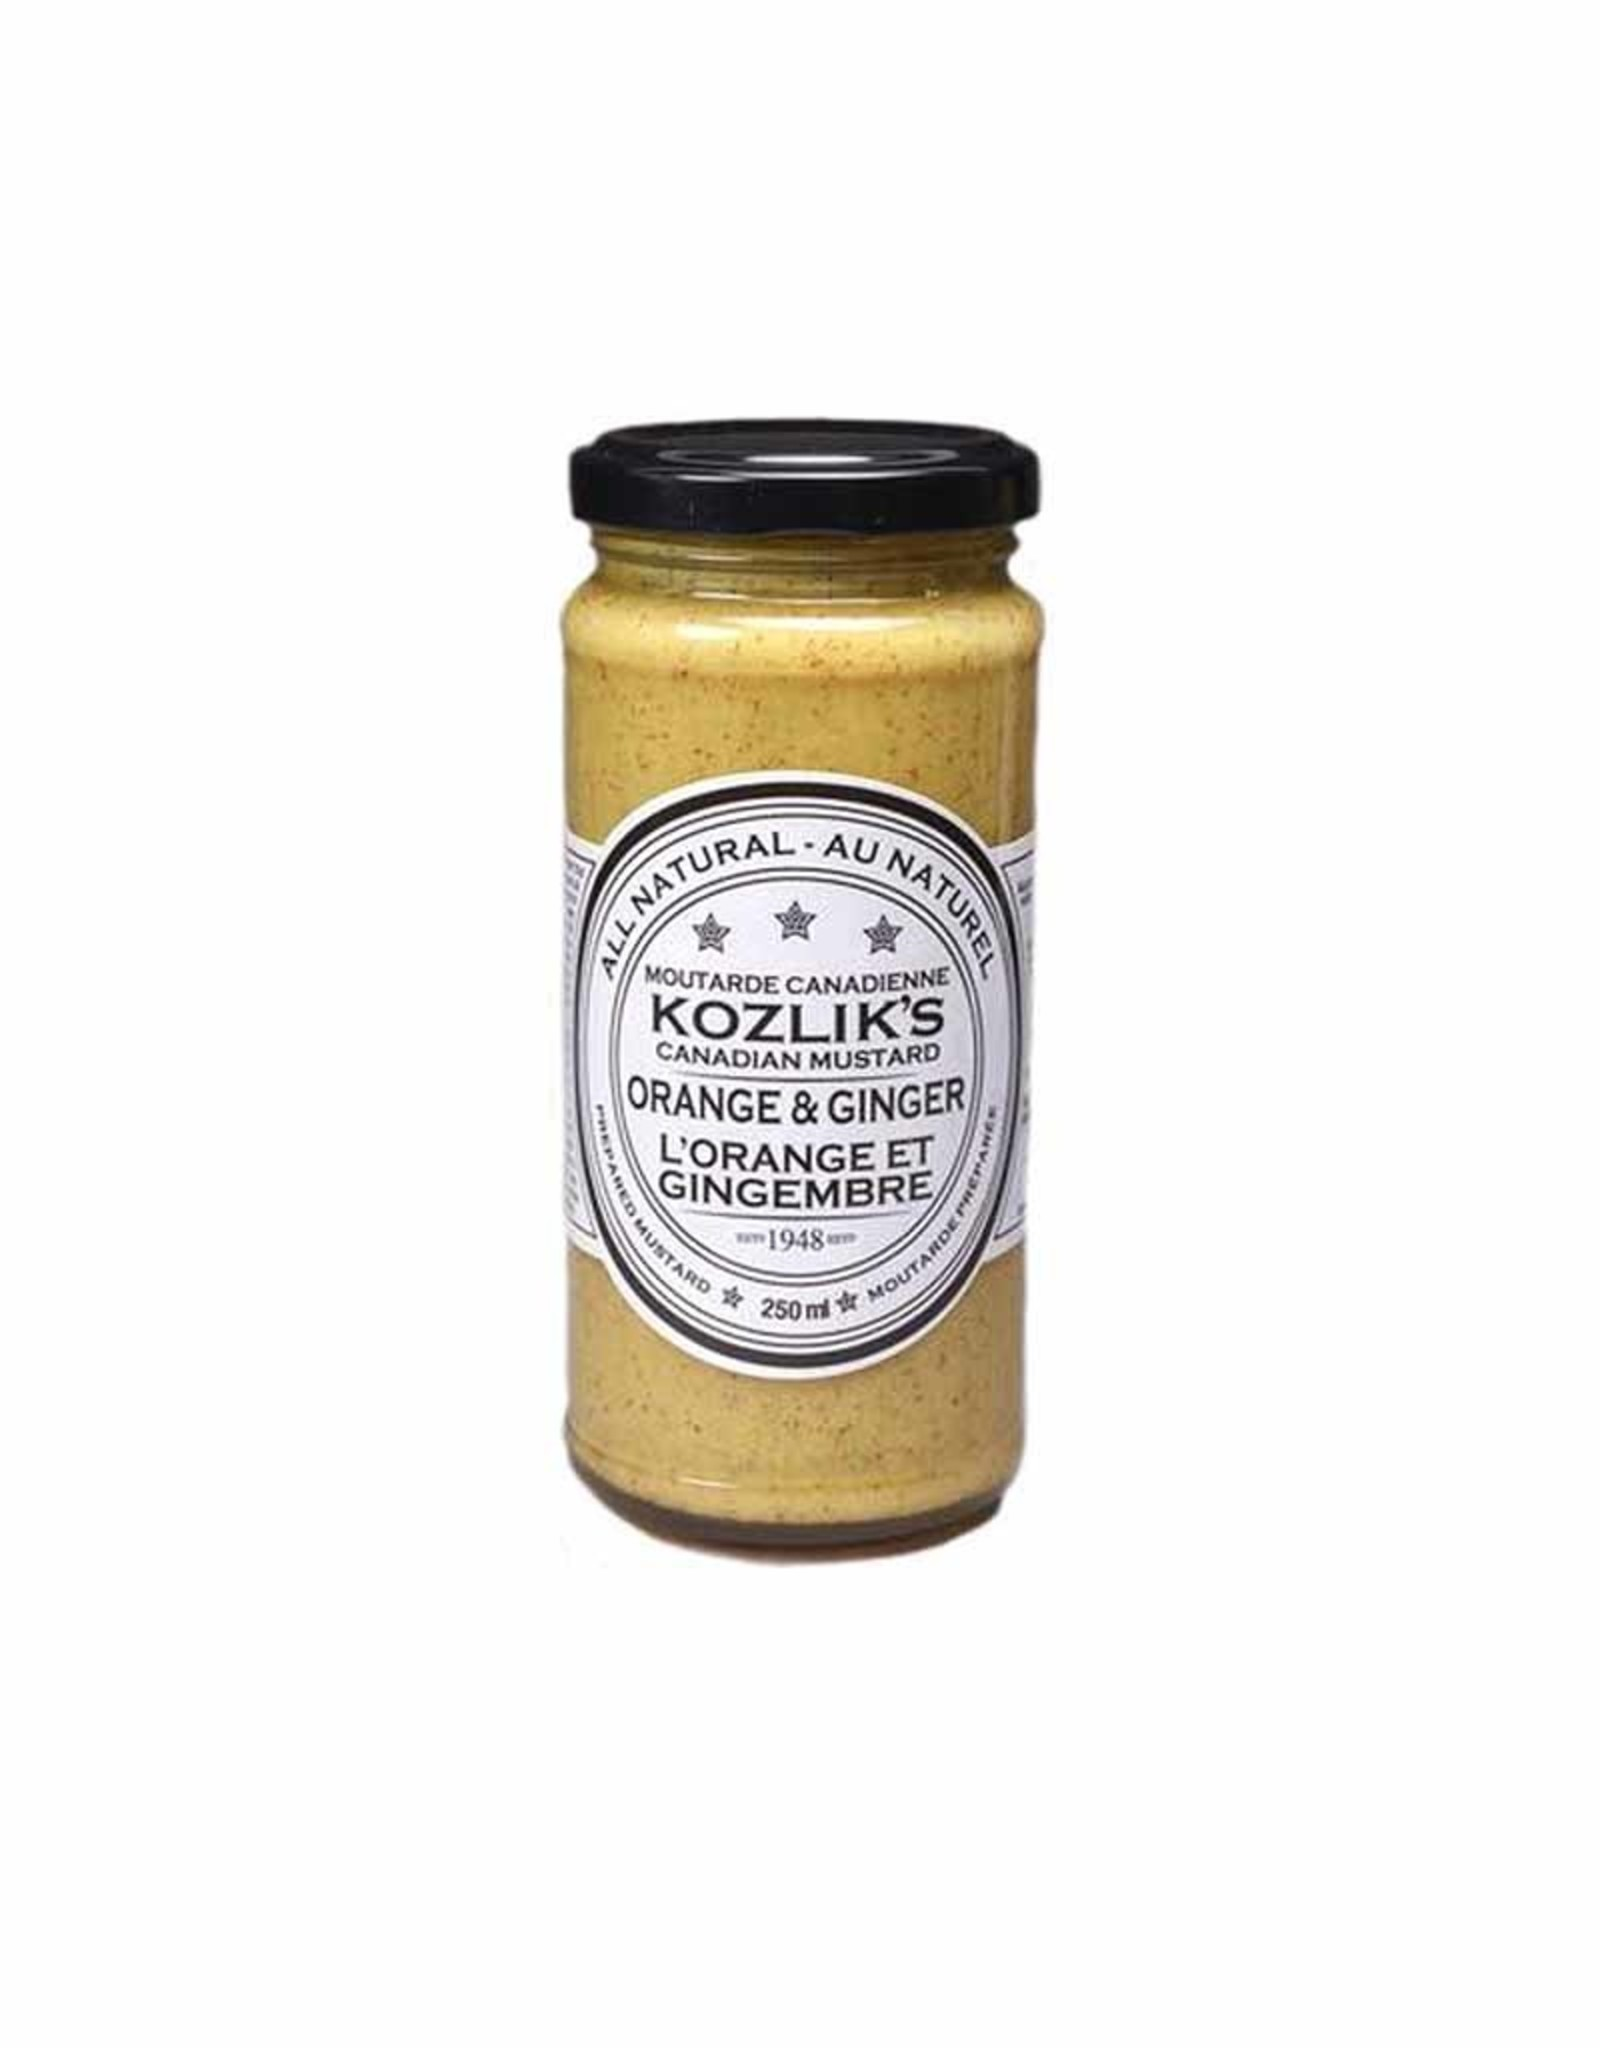 Kozliks Kozliks - Mustard, Orange & Ginger